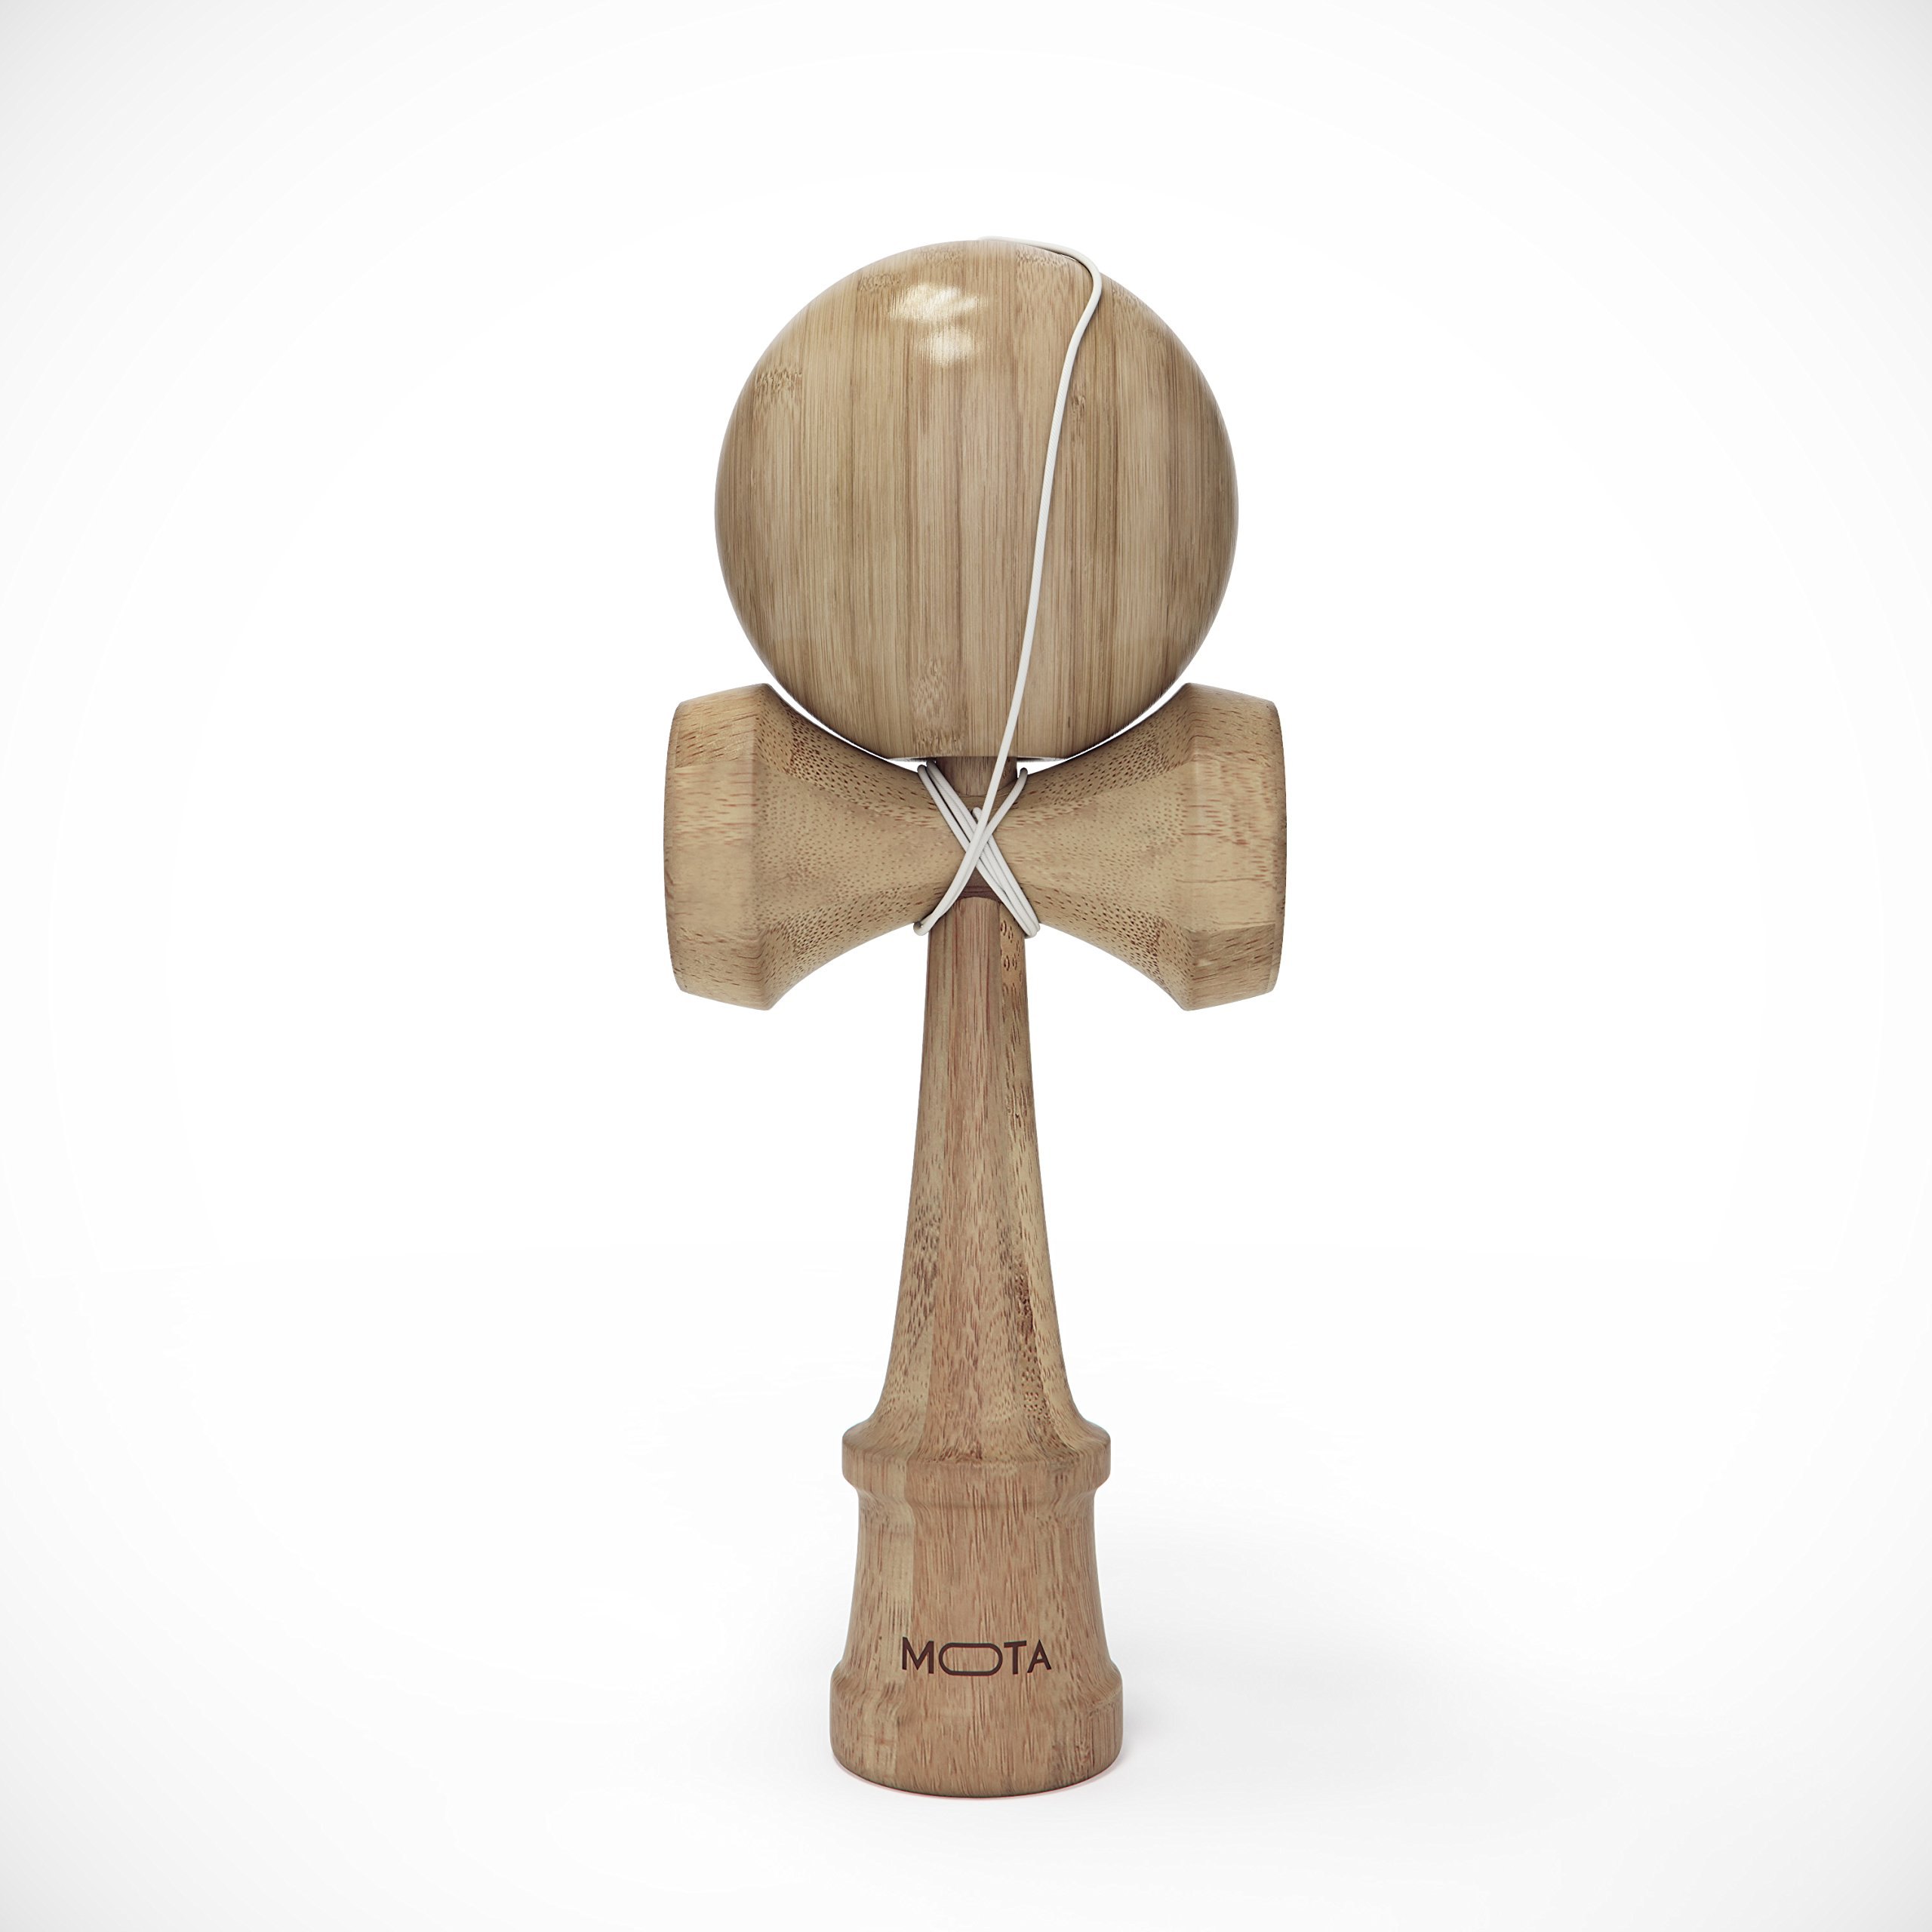 MOTA Kendama Bamboo Toy - Classic Japanese Wooden Ball and Cup Skill Game - Bamboo